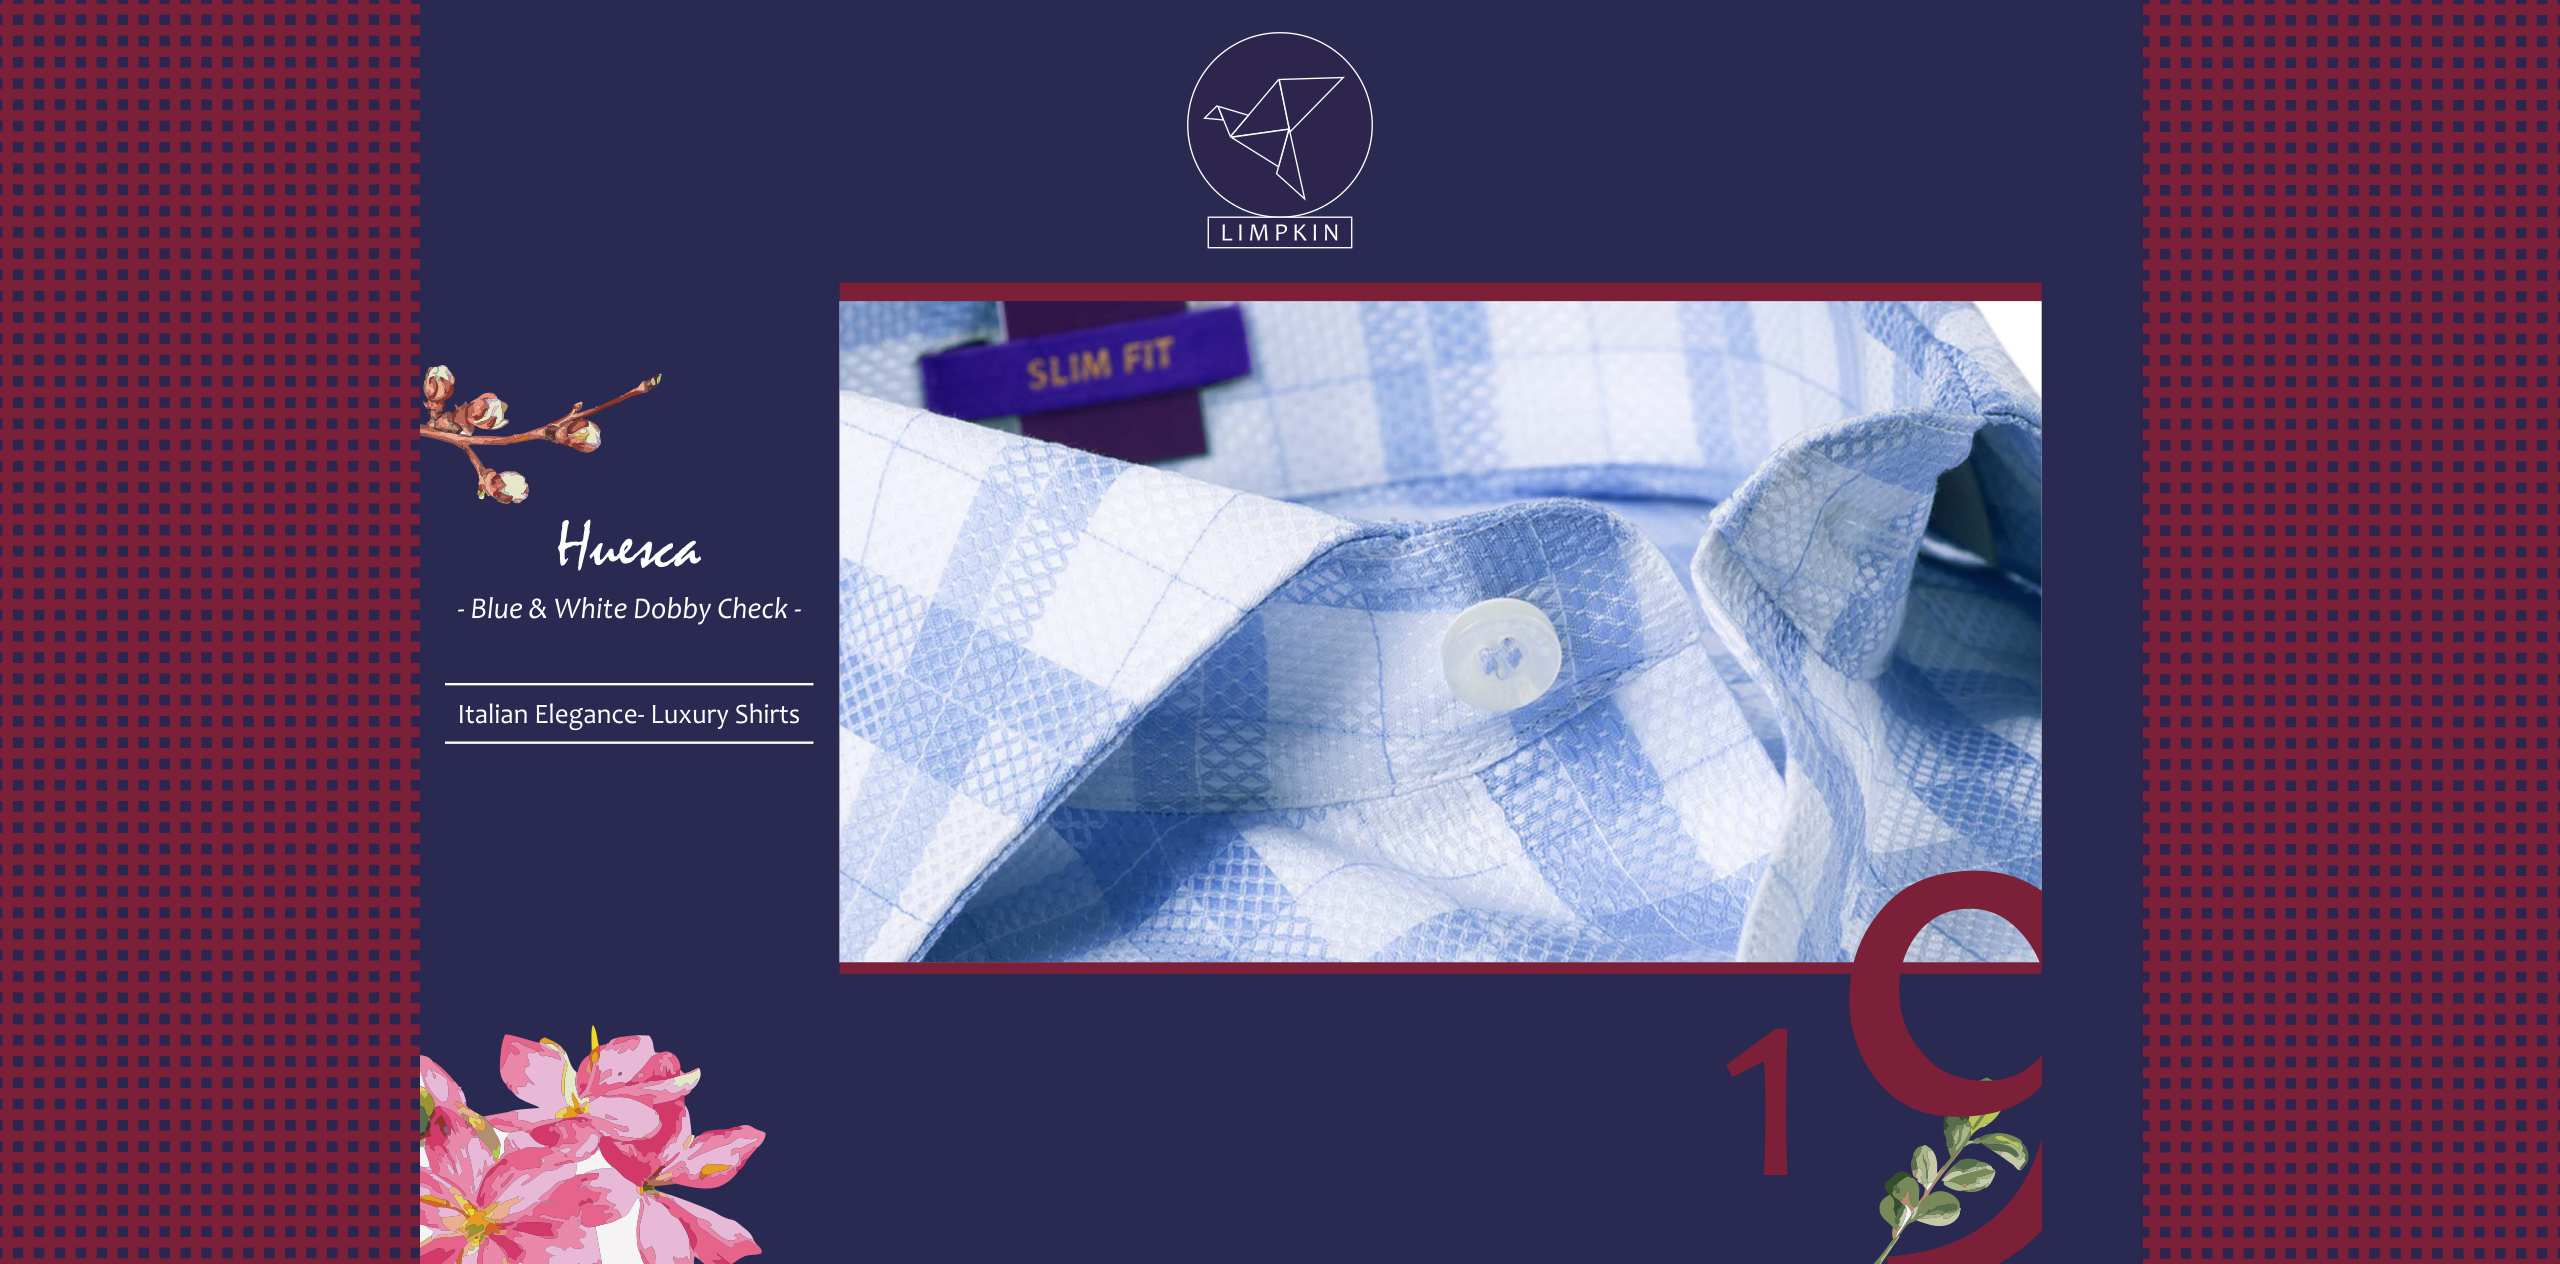 Huesca- Blue & White Dobby Check- 2/120 Egyptian Giza Cotton- Delivery from 14th Feb - Banner